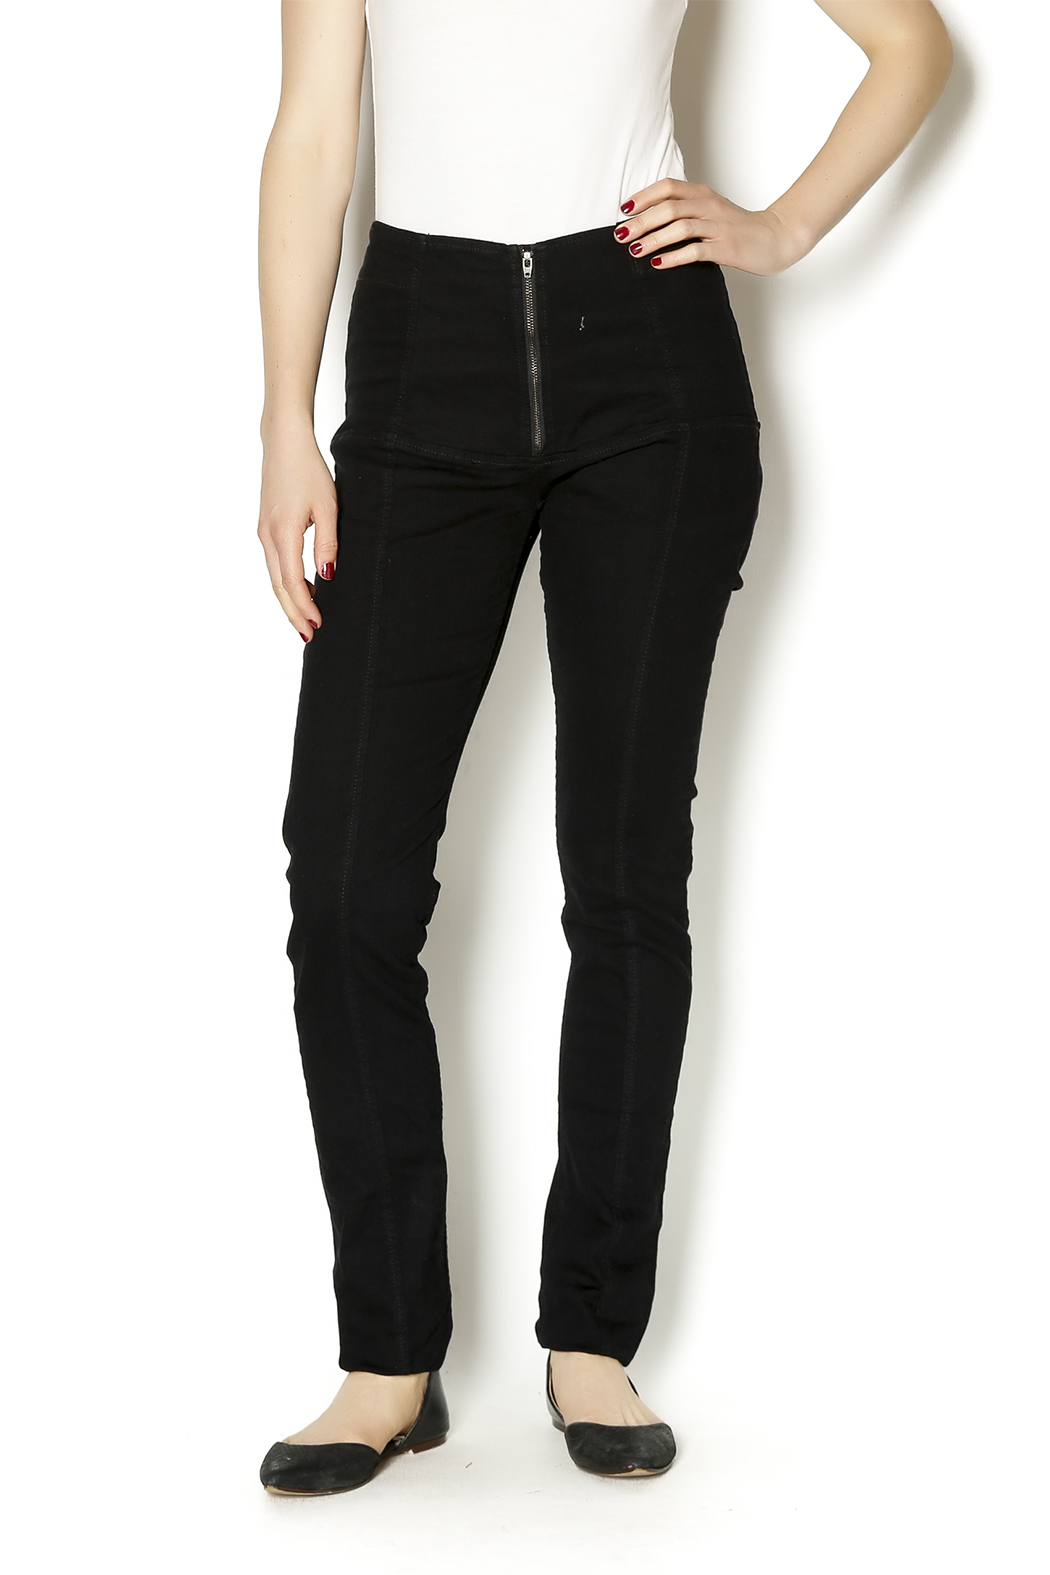 Parie Underground Girdle Pant from California by Grace ...